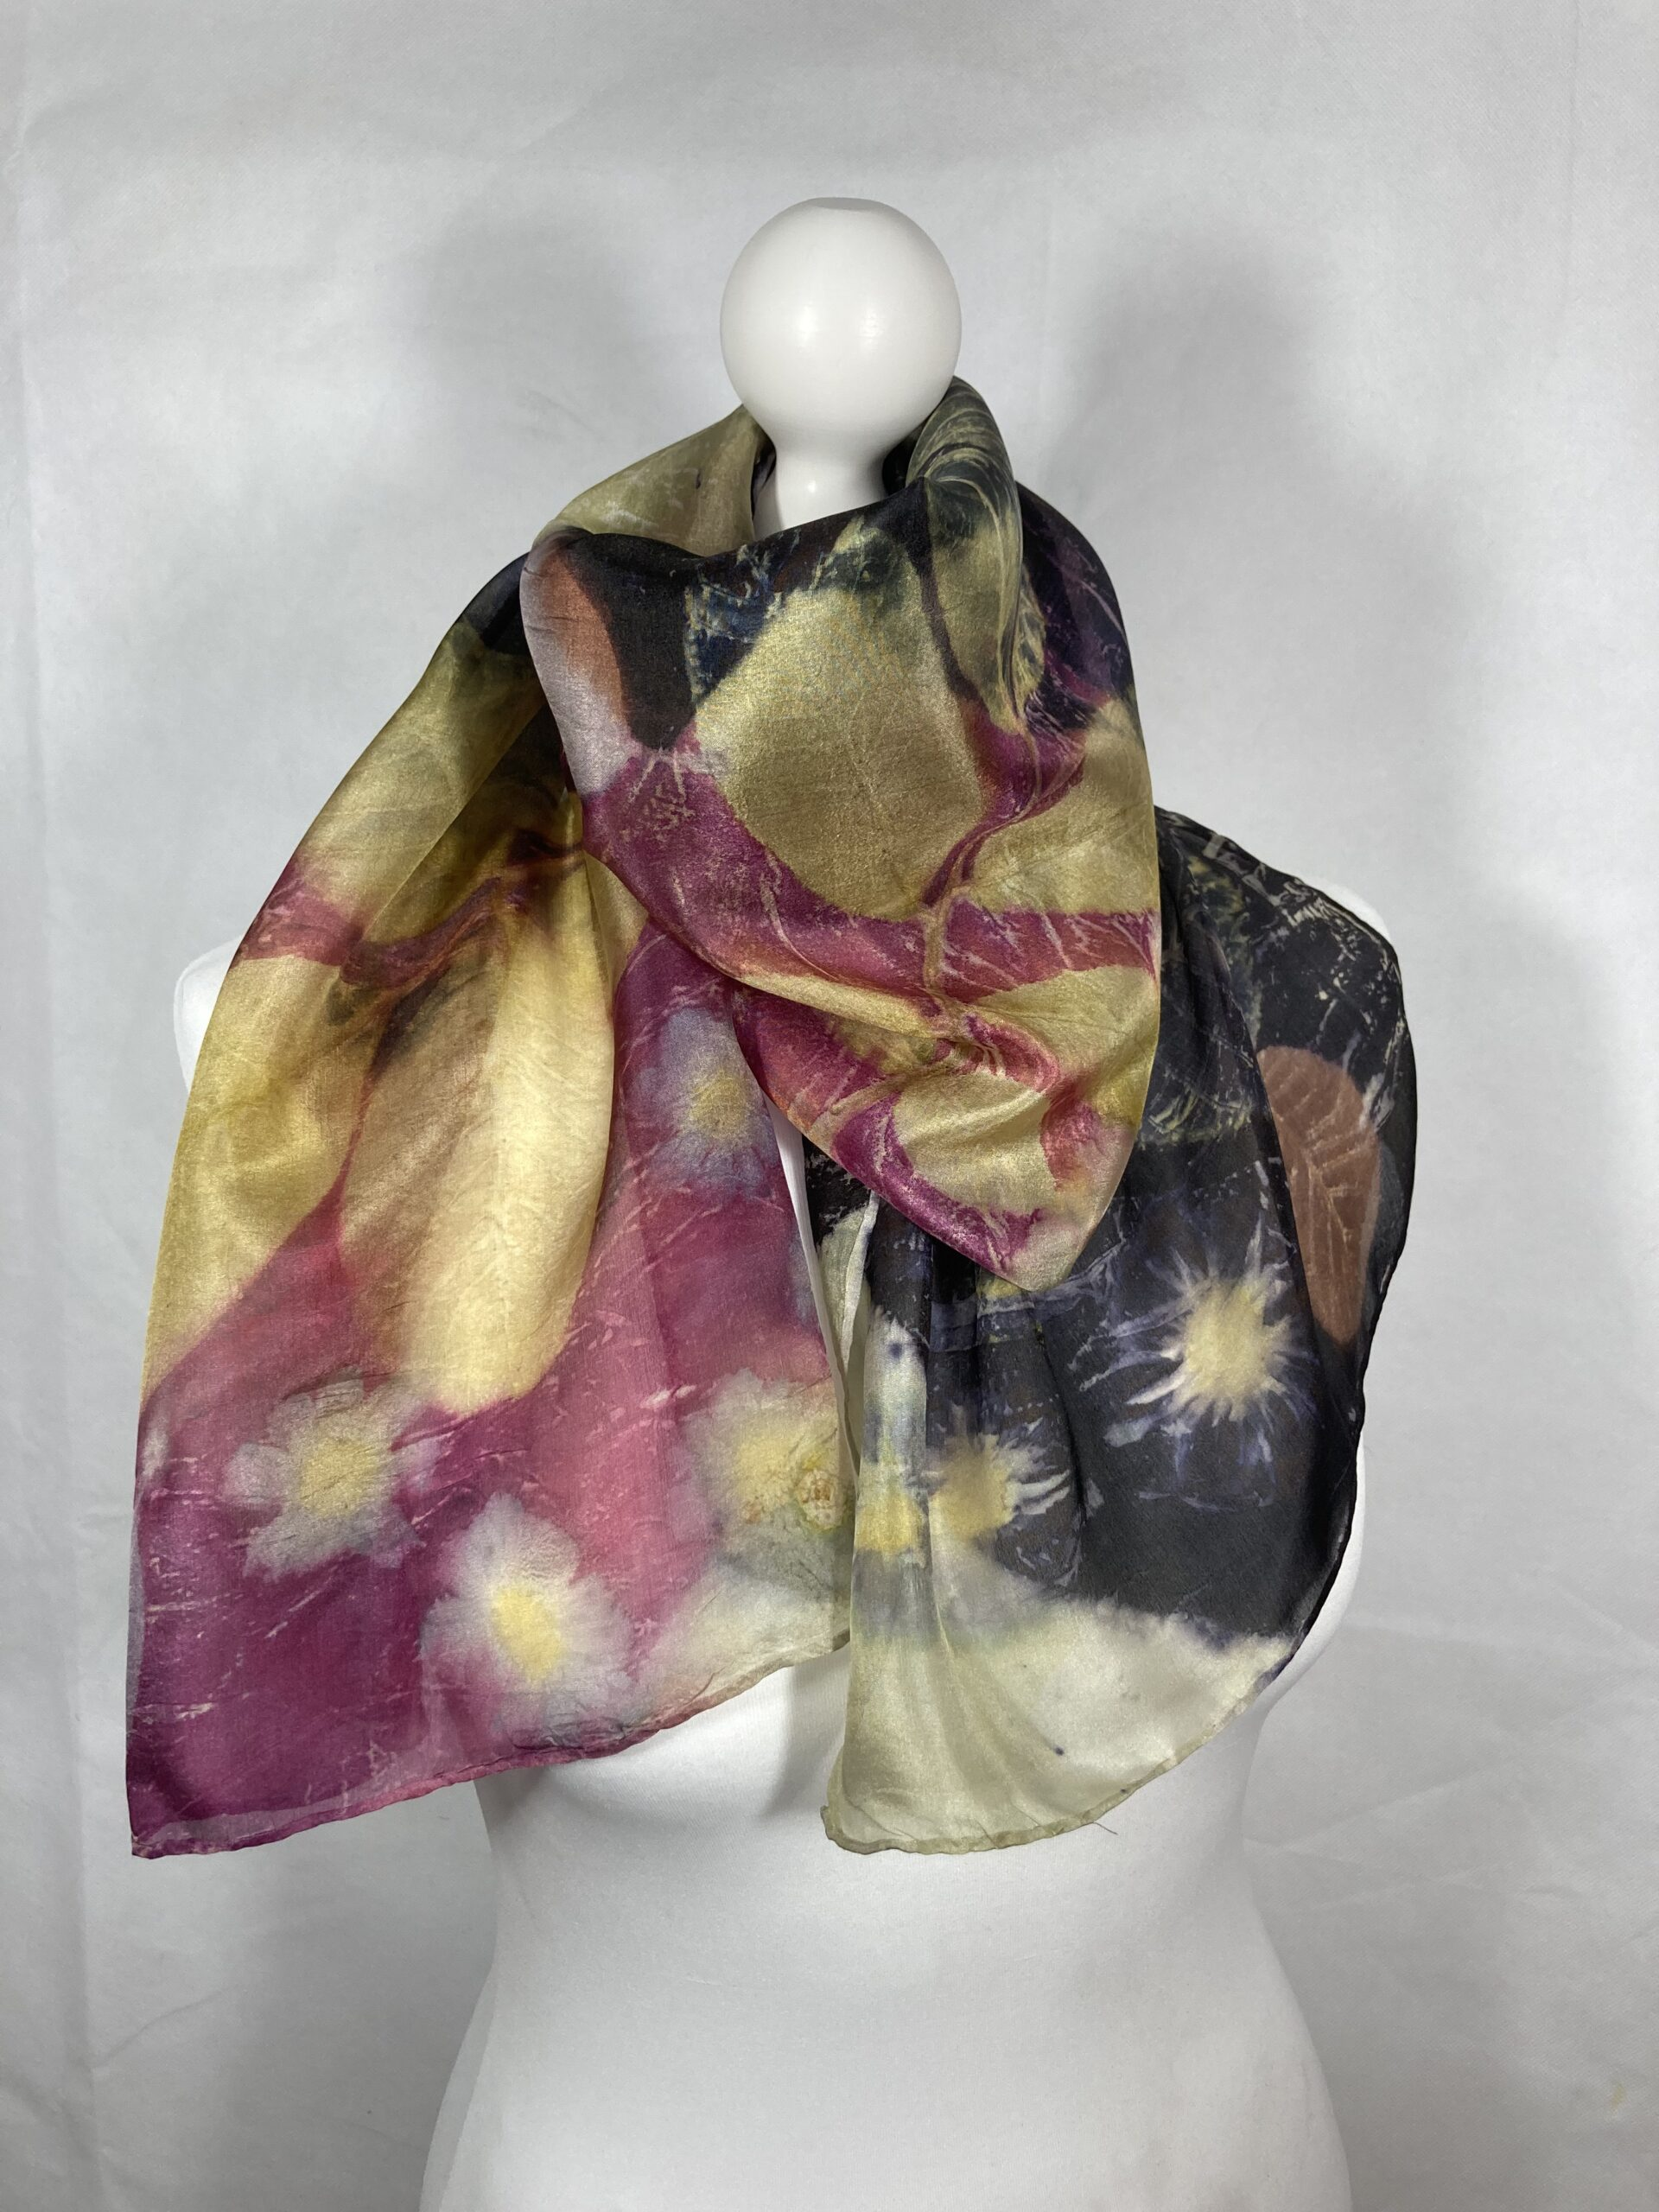 By Maggie Naturally. Multicoloured Pongee 5 silk scarf, handdyed with logwood, weld and cochineal and hand printed with autumn leaves from my garden